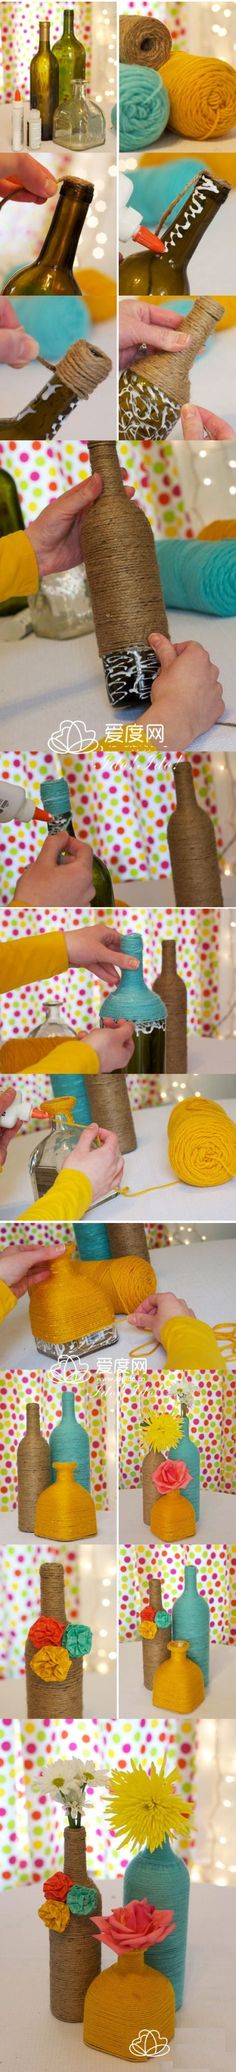 Wrapped Bottles DIY. Hot gun